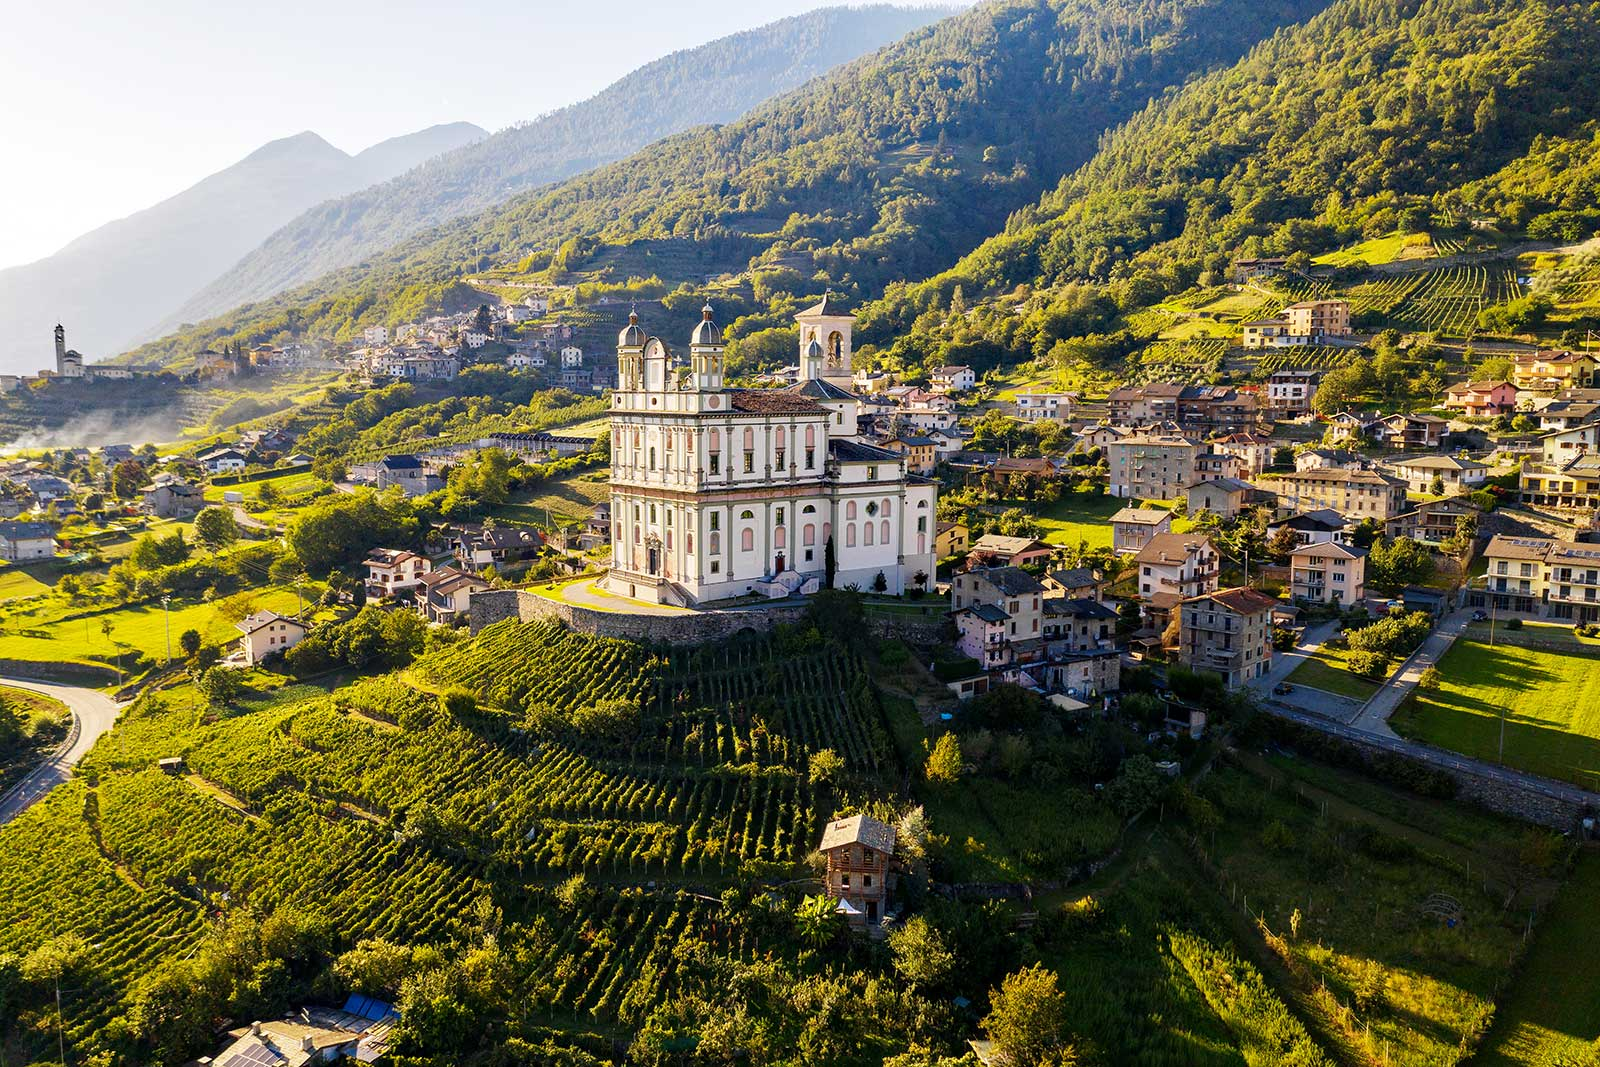 Chiesa della Santa Casa della Madonna Nera di Loreto crowns the vineyards of Valtellina in northern Lombardy, Italy.